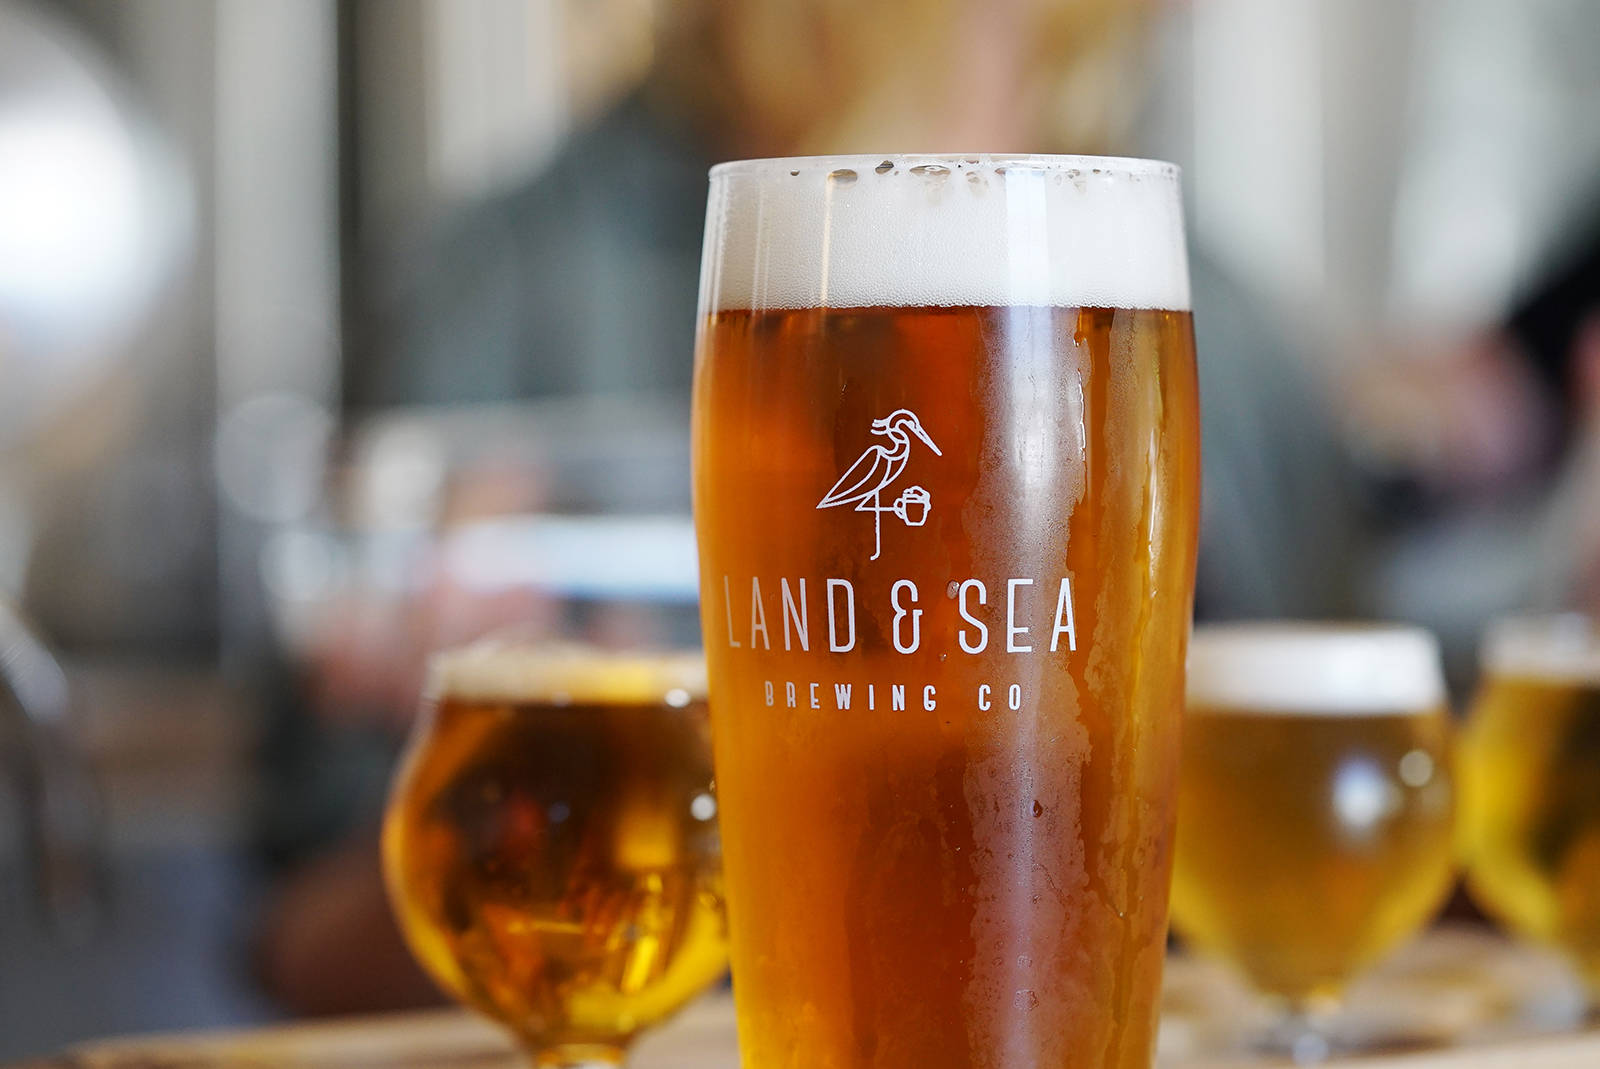 The BC Ale Trail's 2019 Best Brewery Experience winner, Land & Sea Brewing in Comox, was recognized for its open-concept tasting room where customers can see the brewer in action while sampling the beers and enjoying delicious food.